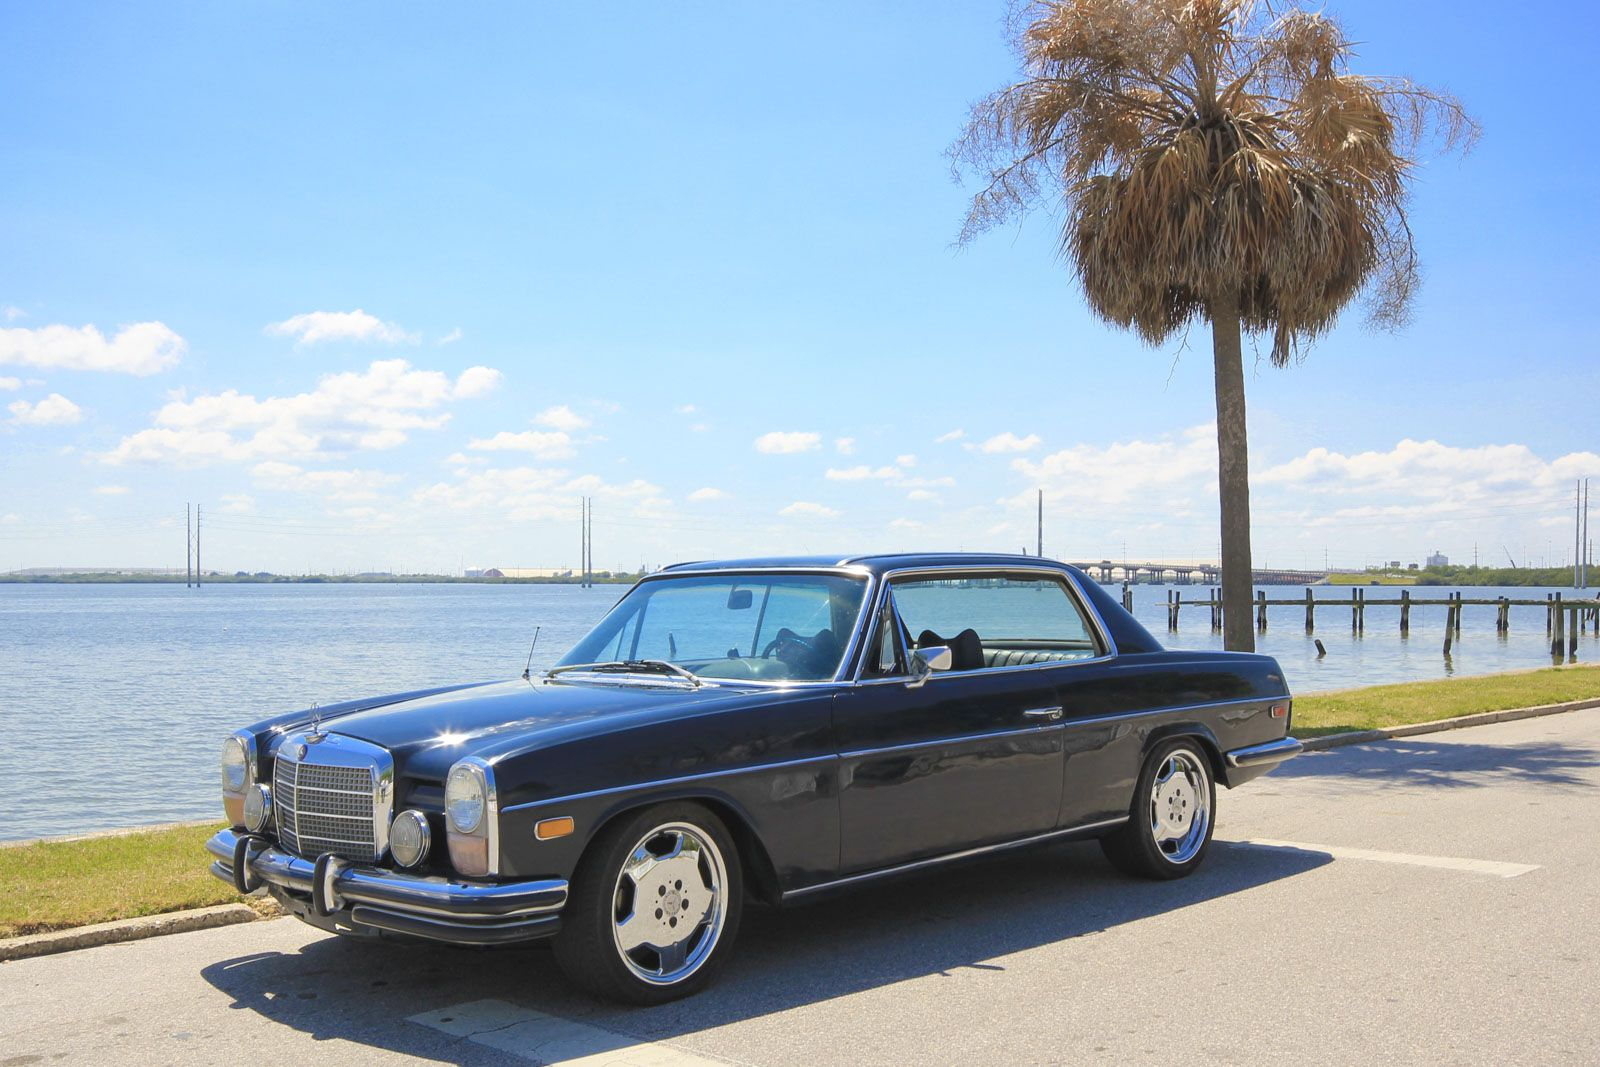 1972 Mercedes Benz 250c On Staggered 17 Inch Monoblocks In Beautiful Tampa Florida Drivetastefully W114 In Paradise Mercedes Benz Tampa Mercedes